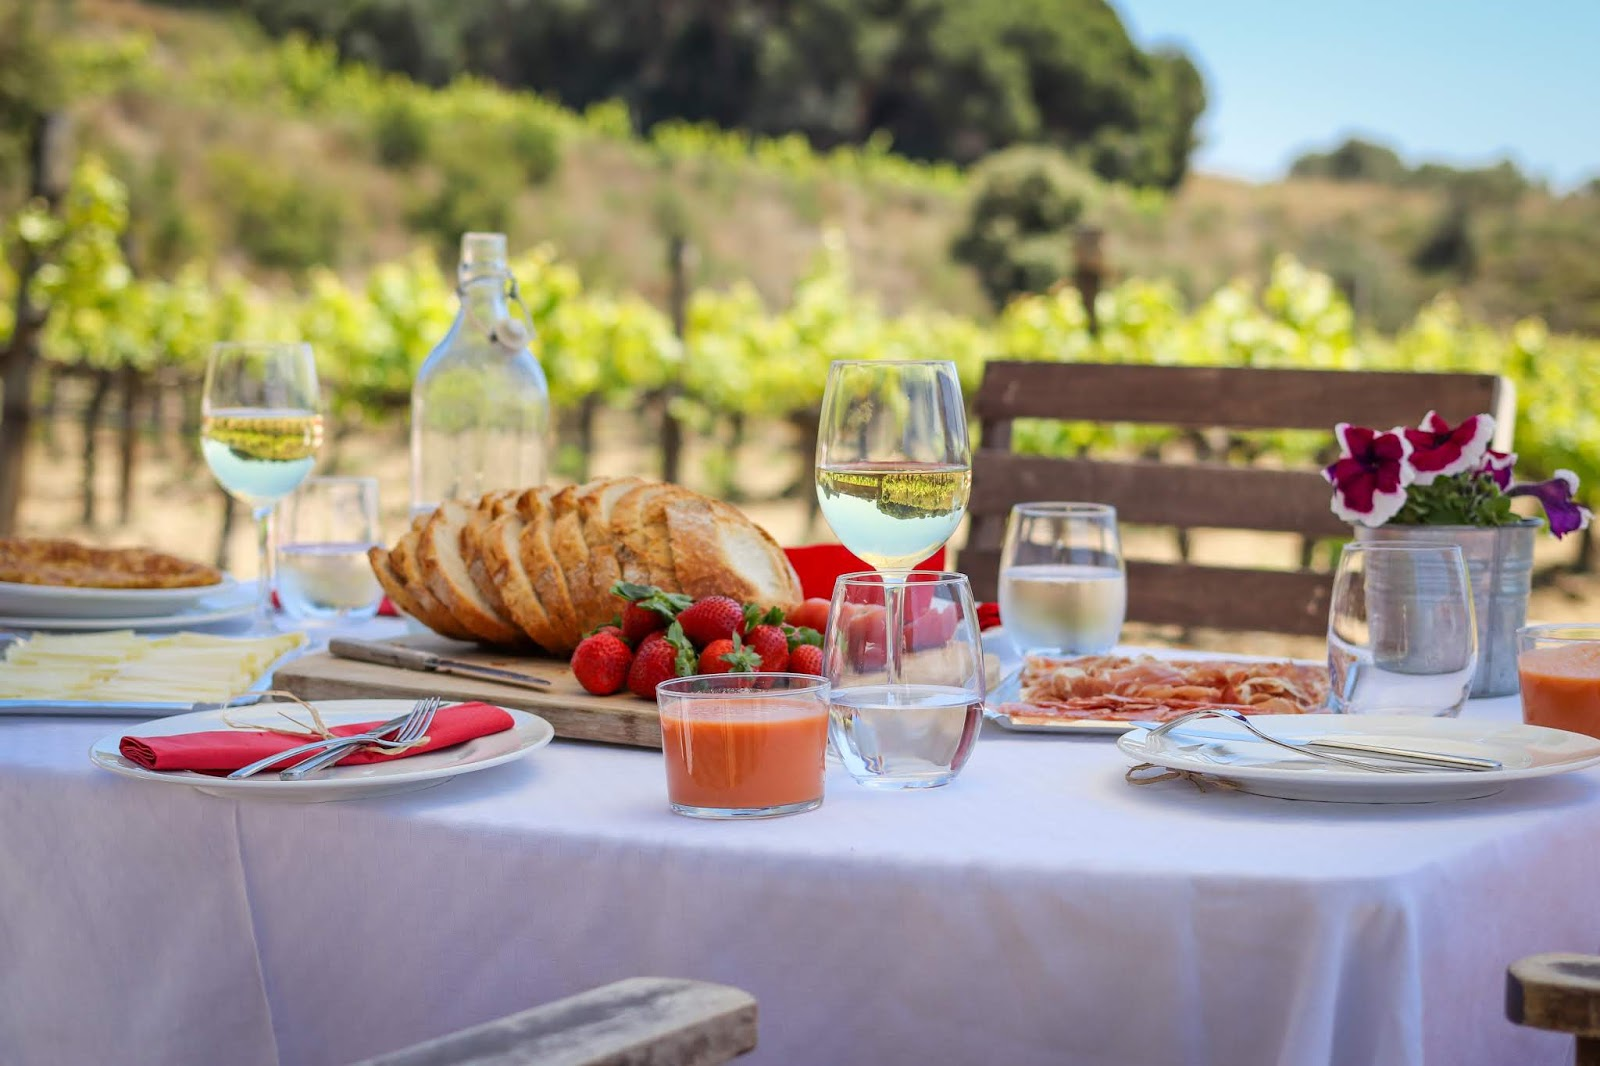 Lunch-at-a-vineyard-in-spain